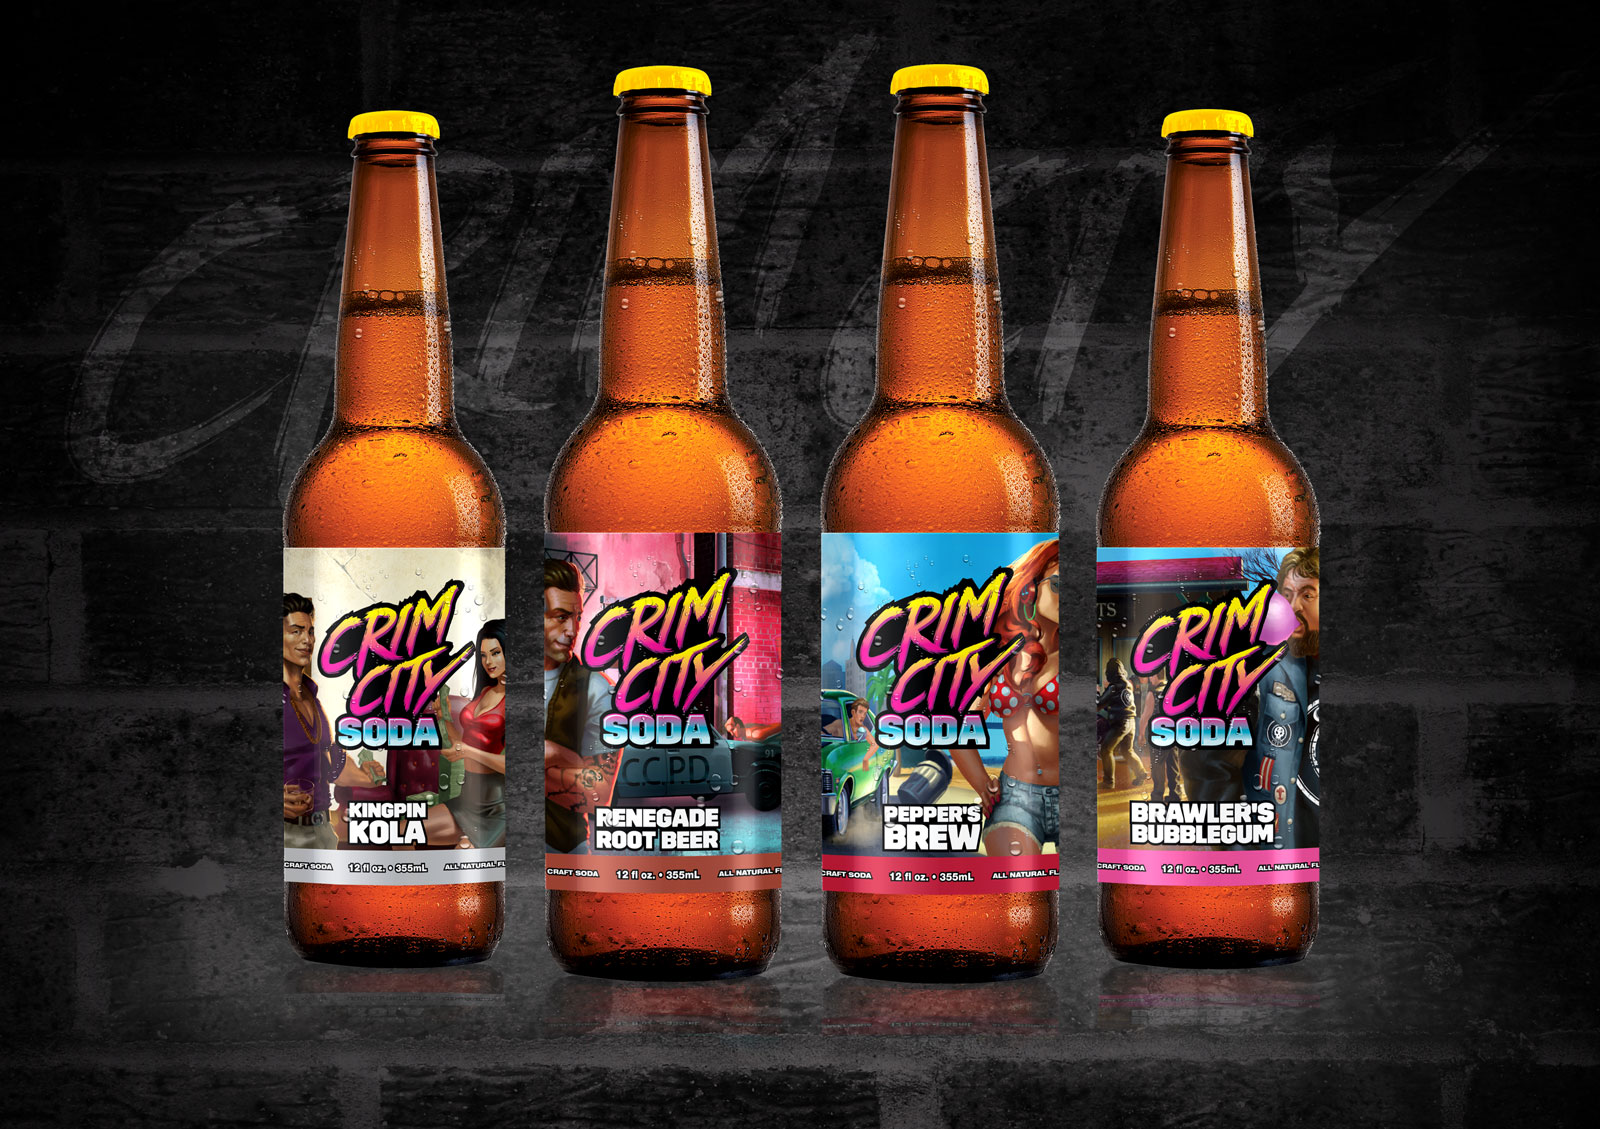 Crim City Craft Soda comes in four great flavors, Kingpin Kola, Renegade Root Beer, Pepper's Brew, and Brawler's Bubblegum.